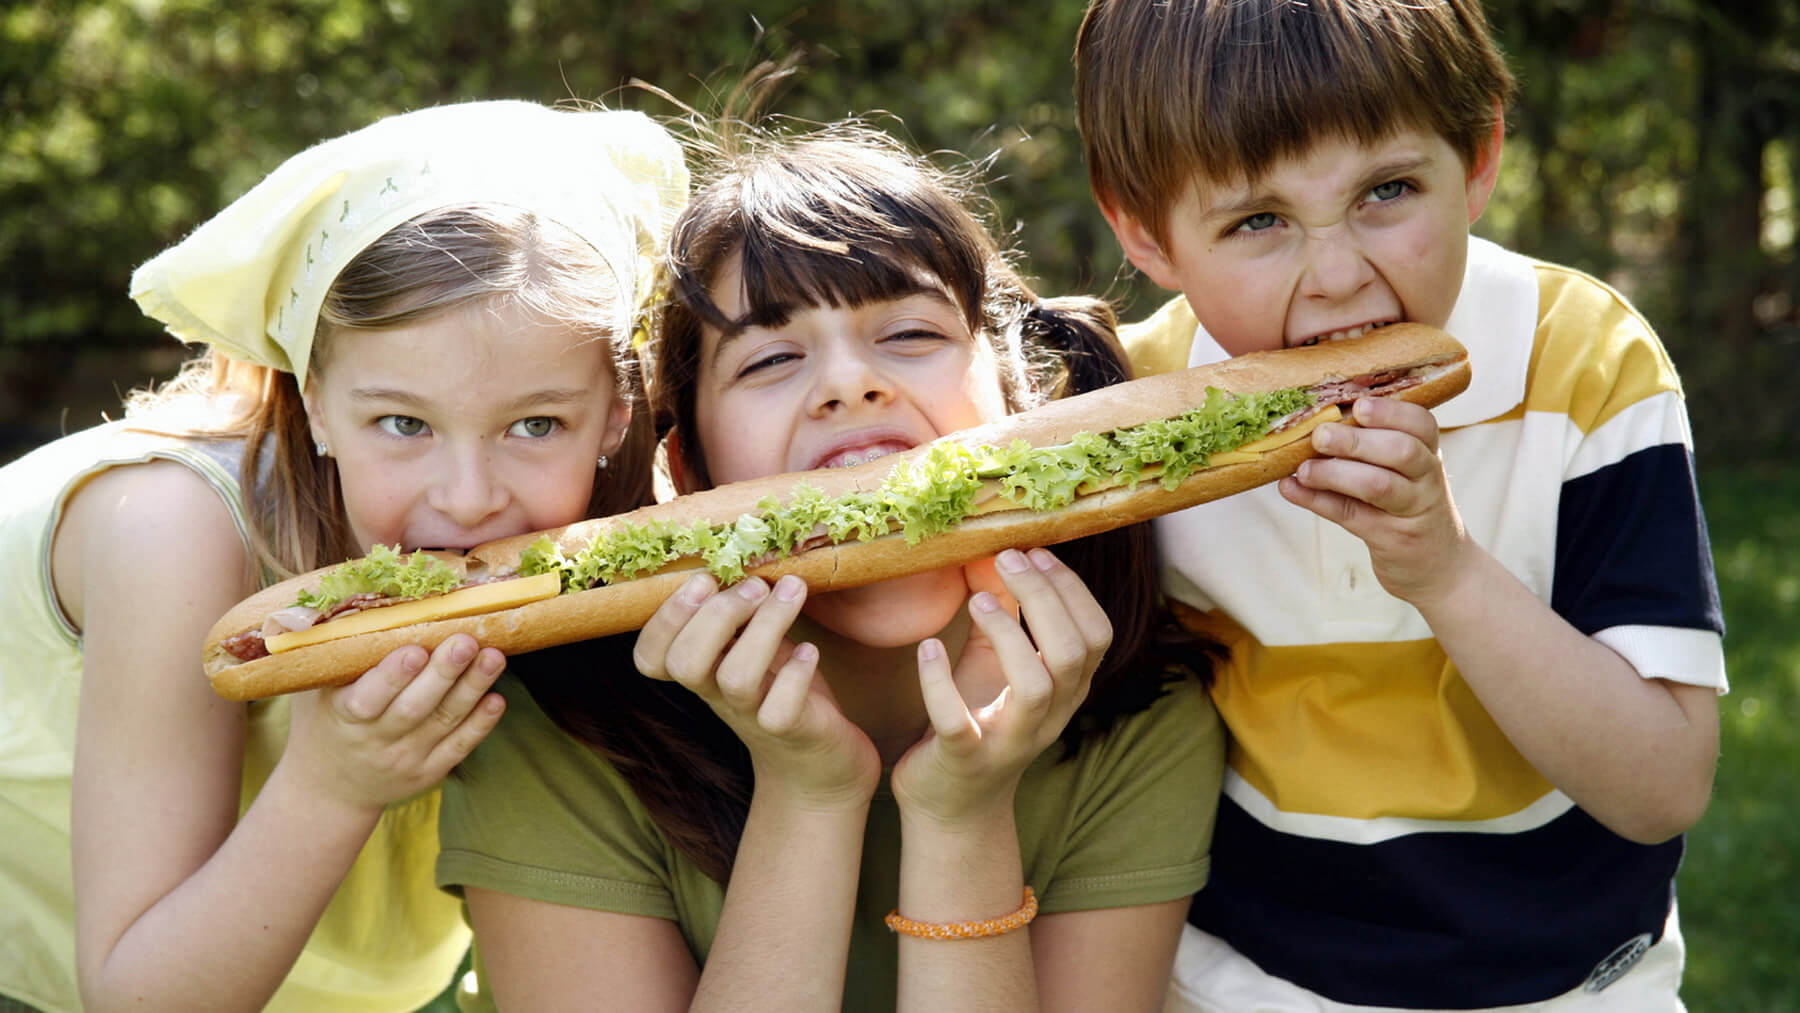 Three children sharing a sandwich